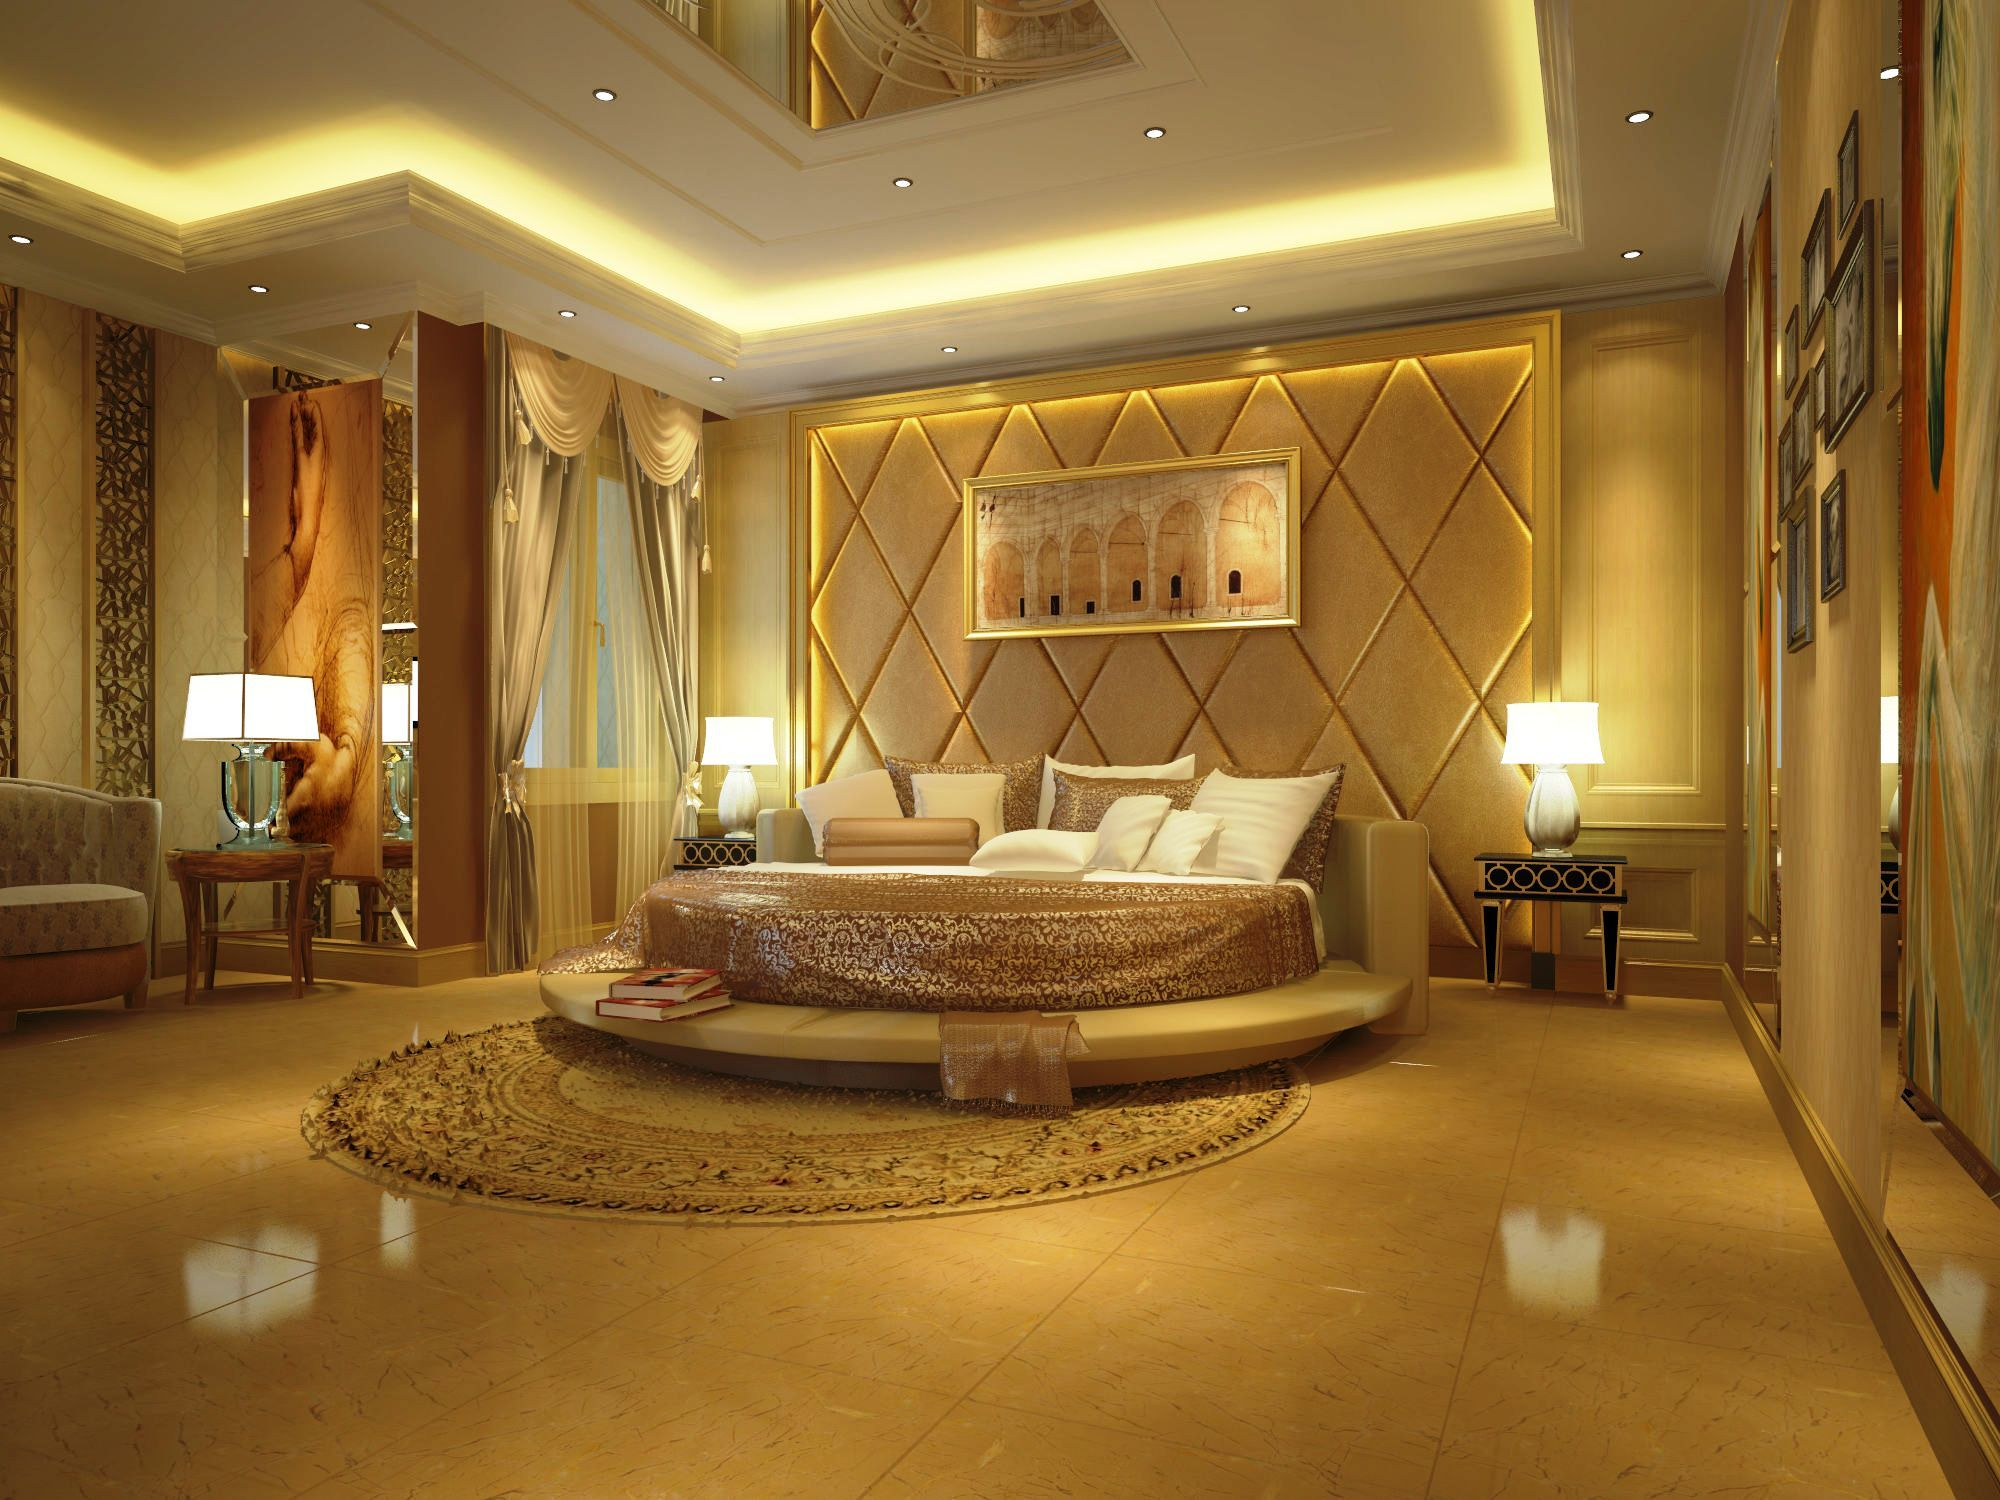 Interior Design Ideas Master Bedroom A Master Bedroom Fit For A King & Queendescription From